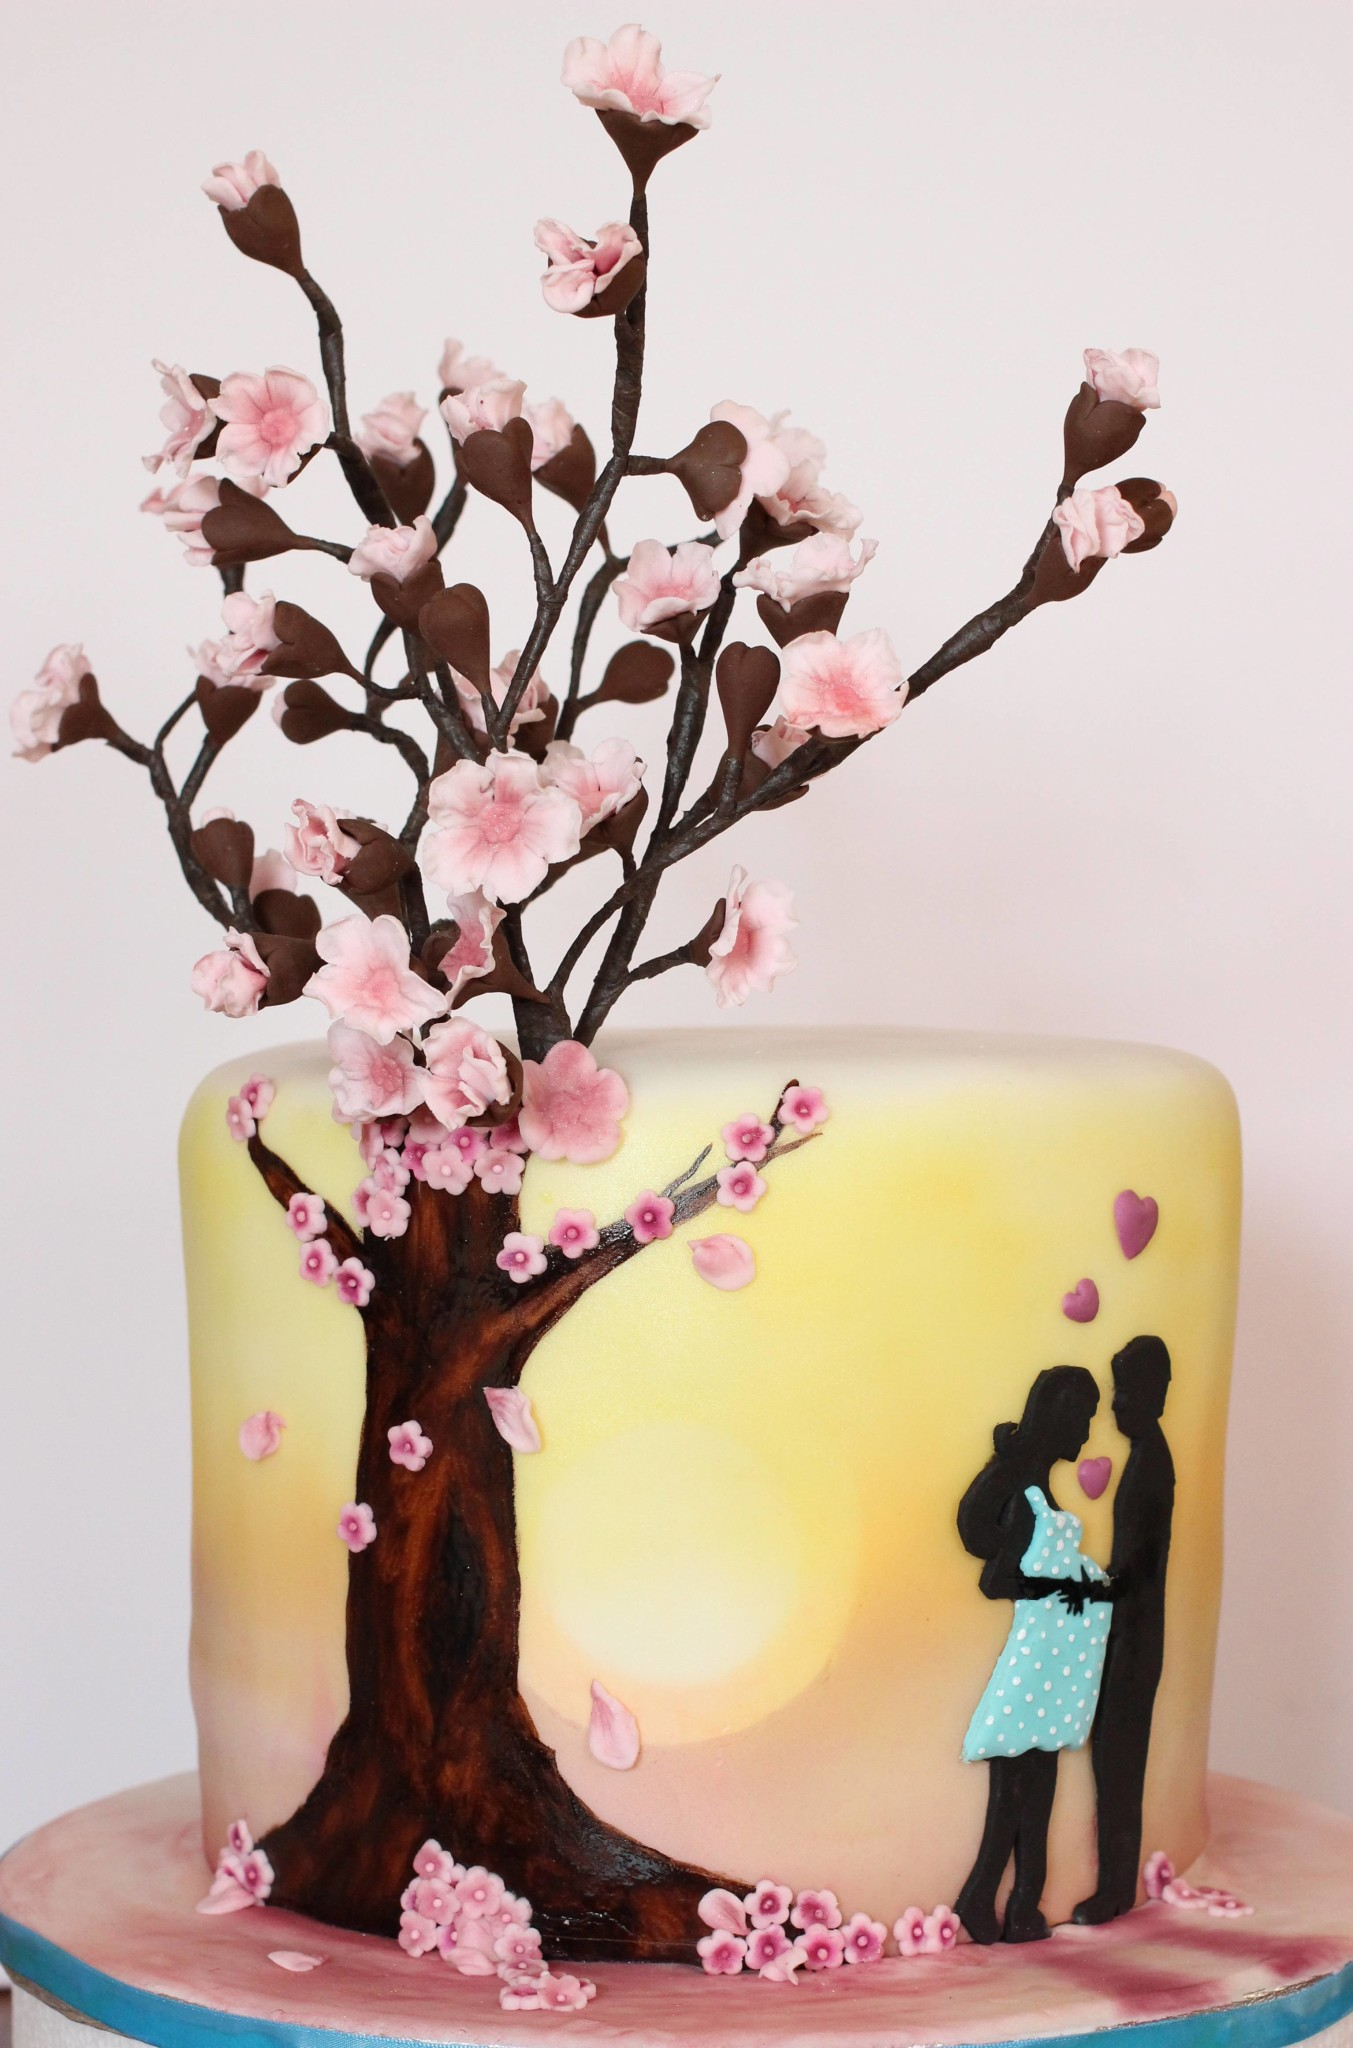 silhouette cake babyparty mal anders sarahs cakes. Black Bedroom Furniture Sets. Home Design Ideas